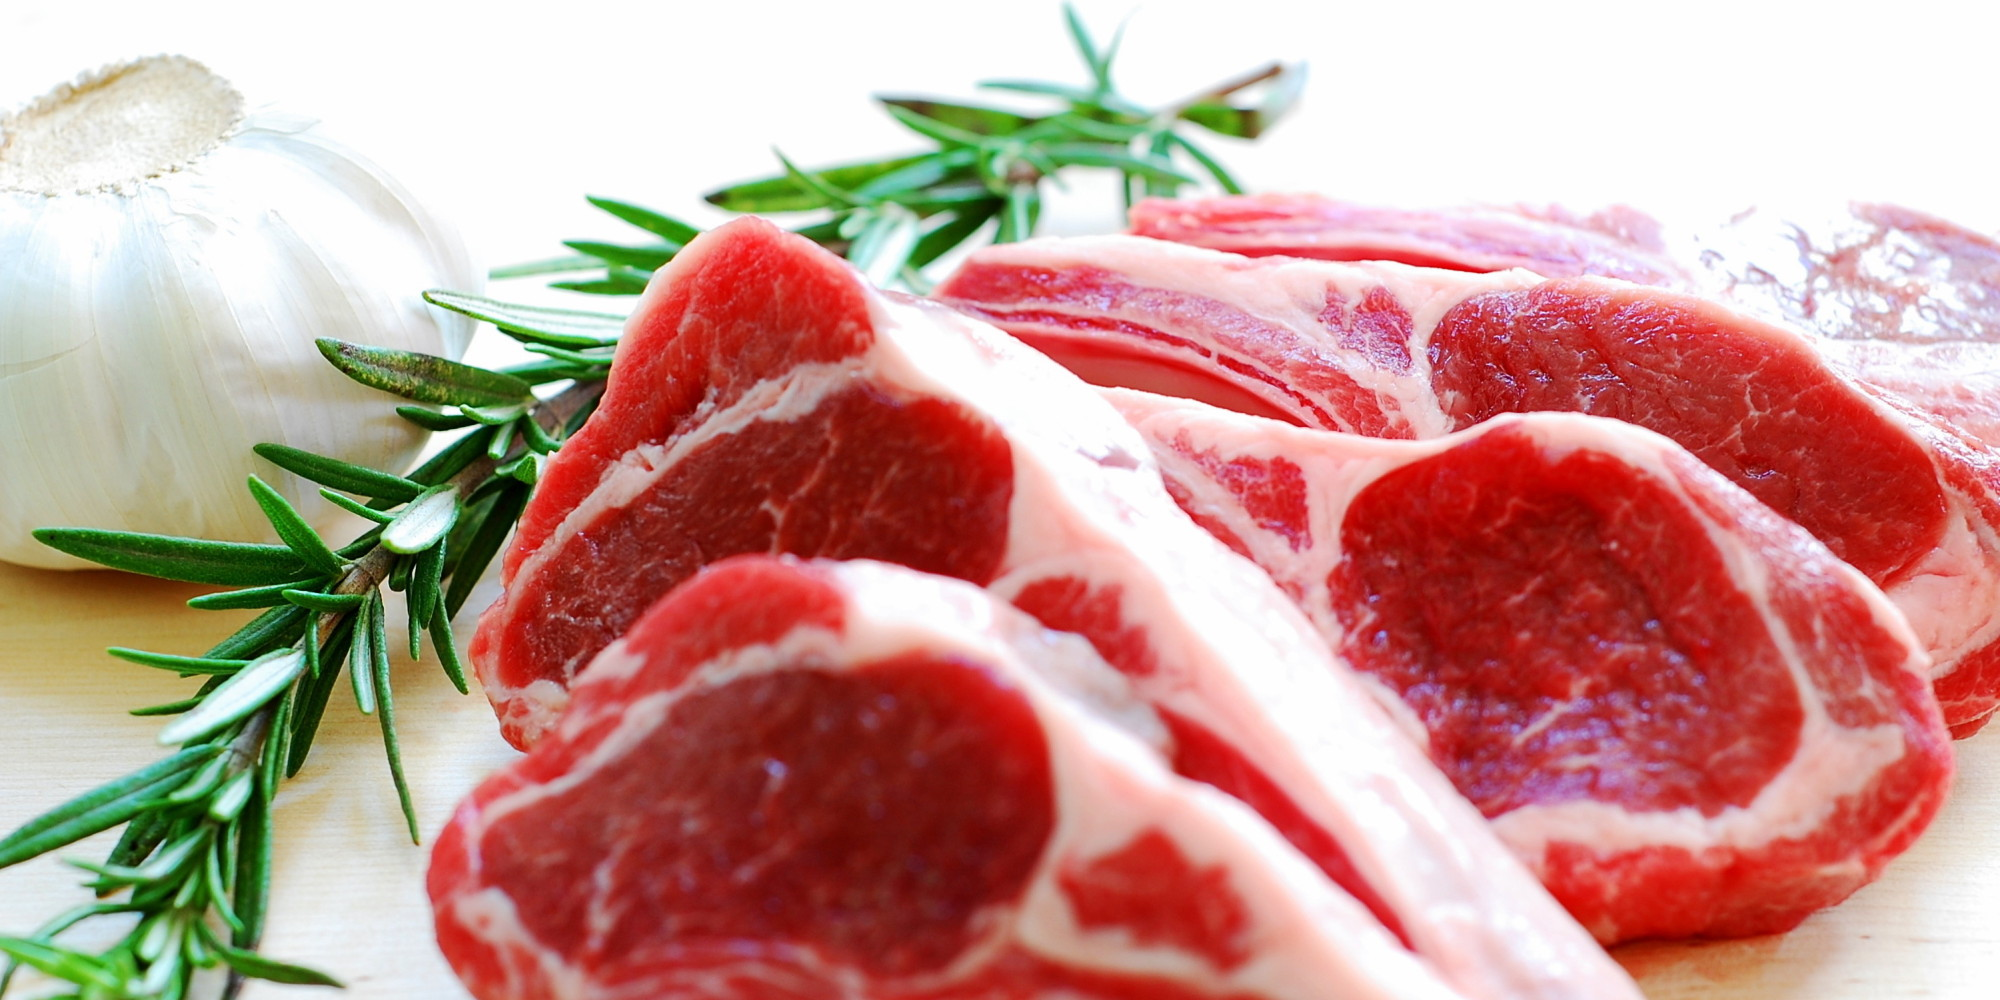 We Need to Make Local Meat More Broadly Affordable | HuffPost